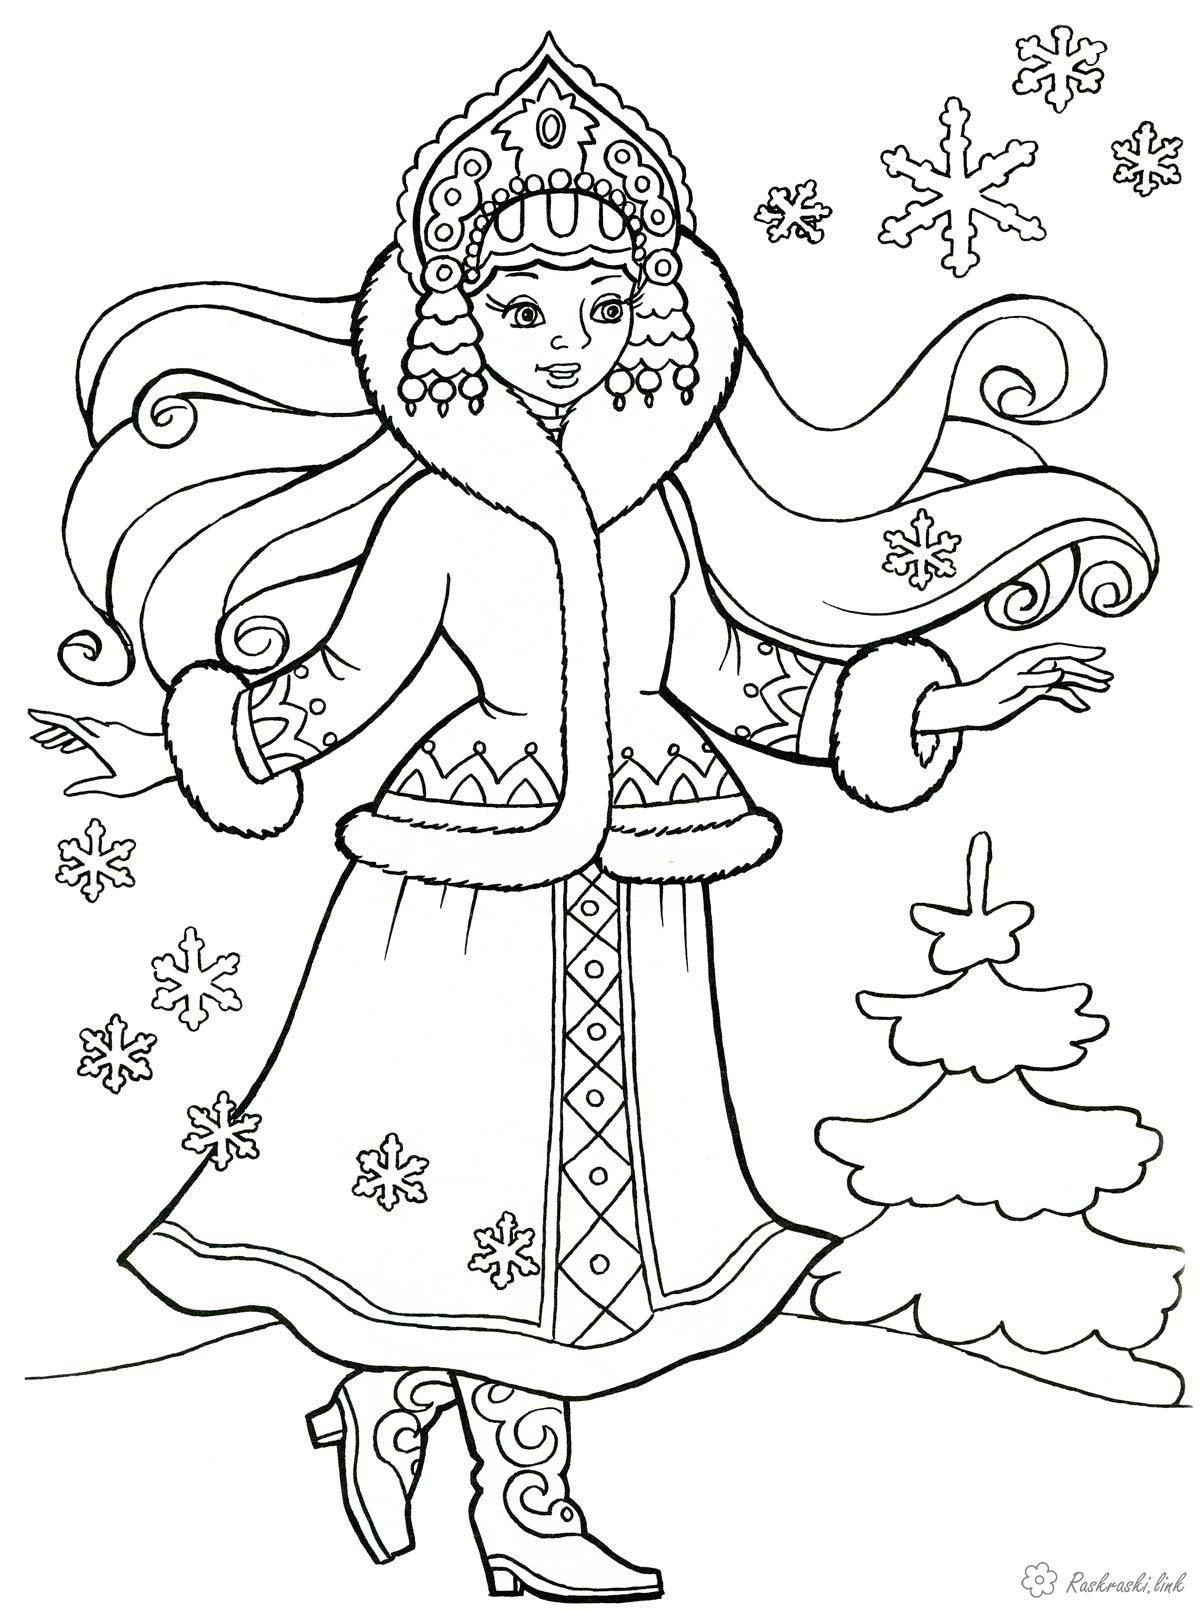 Coloring book varityskuvat - Costumes Free Coloring Pages Online Print